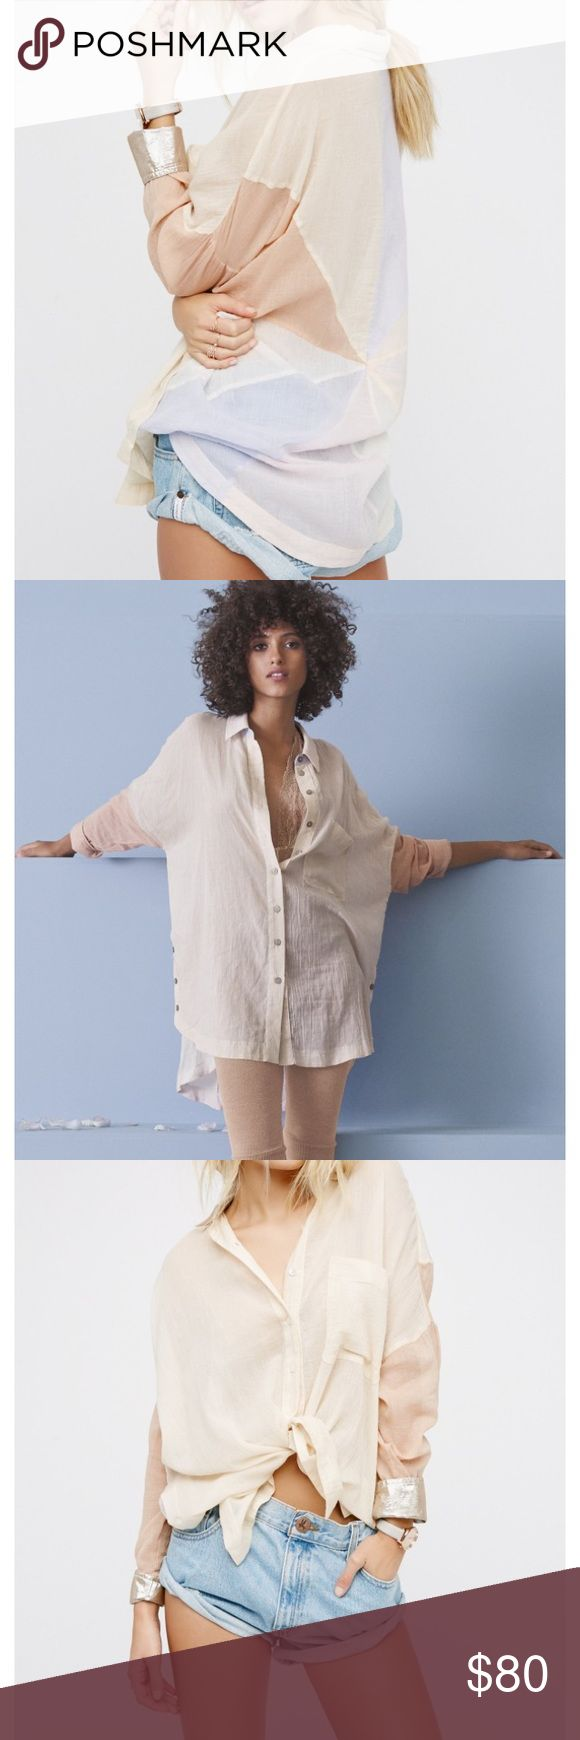 Free People Rainbow Days Button Down Shirt Lightweight sheer buttondown with a crinkly look. Features a multi-coloured pinwheel back design inspired by beautiful rays of light. Shimmering metallic accents on the collar and sleeve cuffs. Side vents with button closures. Front pocket detail. Relaxed, oversized, effortless fit. Long enough to work as mini shirt dress if you wear a slip underneath. Large. (L sold out online) Free People Tops Button Down Shirts